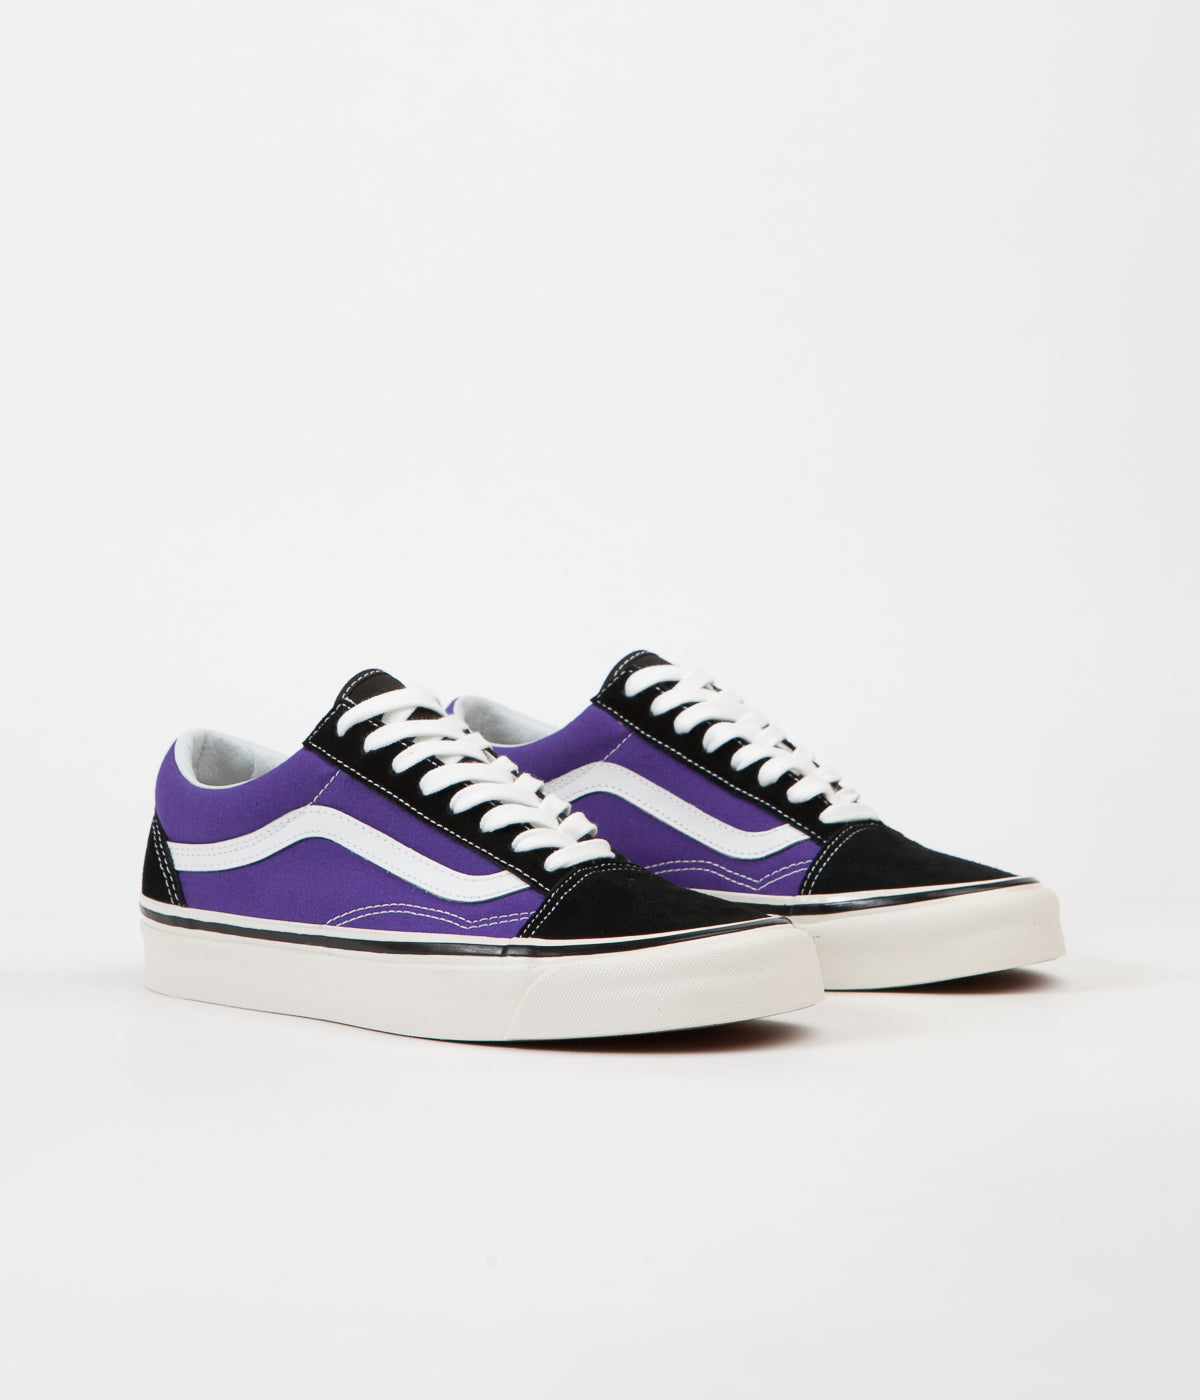 Vans Old Skool 36 DX Anaheim Factory Shoes Black OG